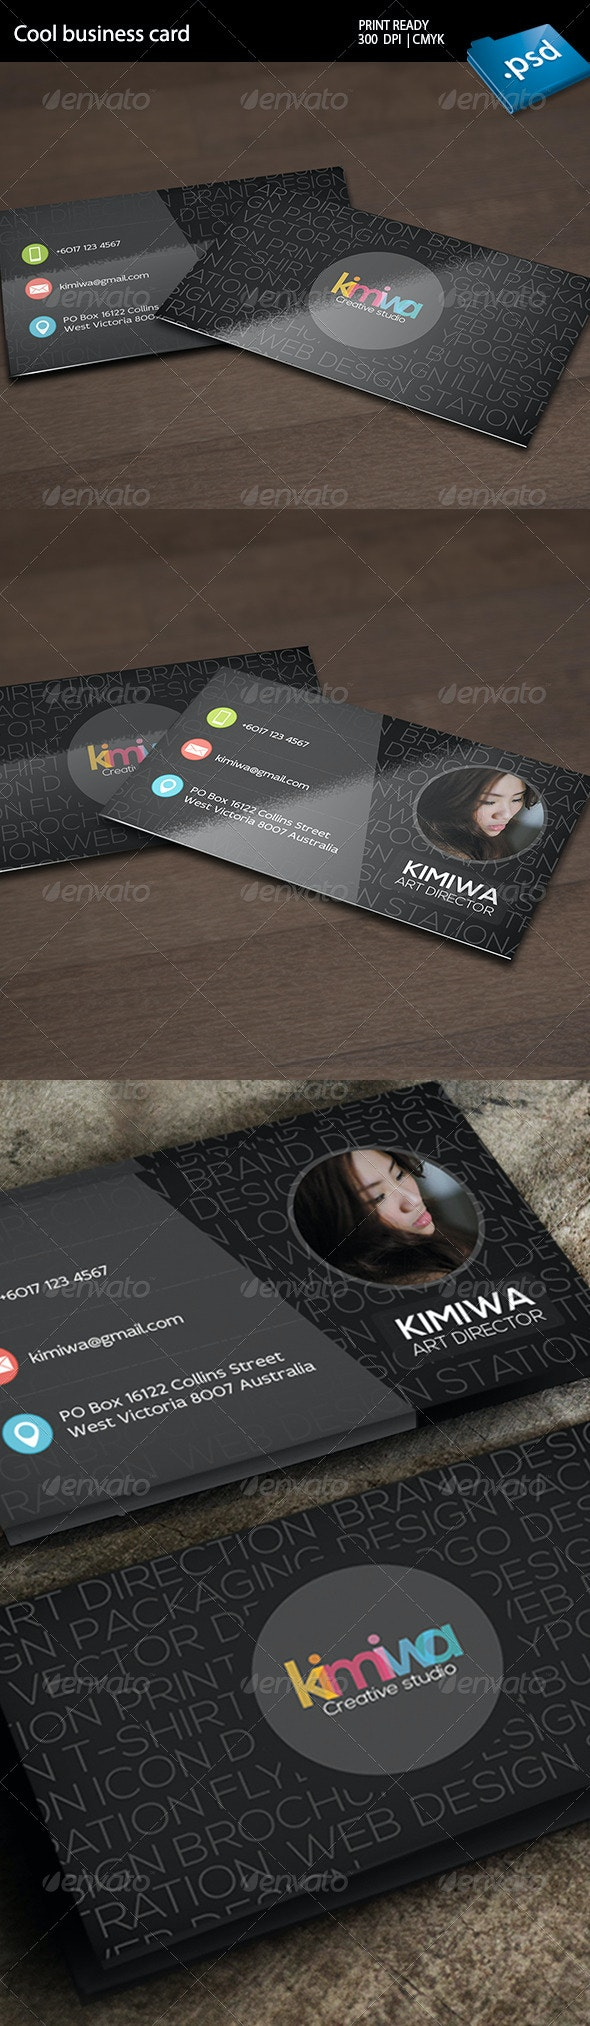 Typography business card Vol2 - Creative Business Cards